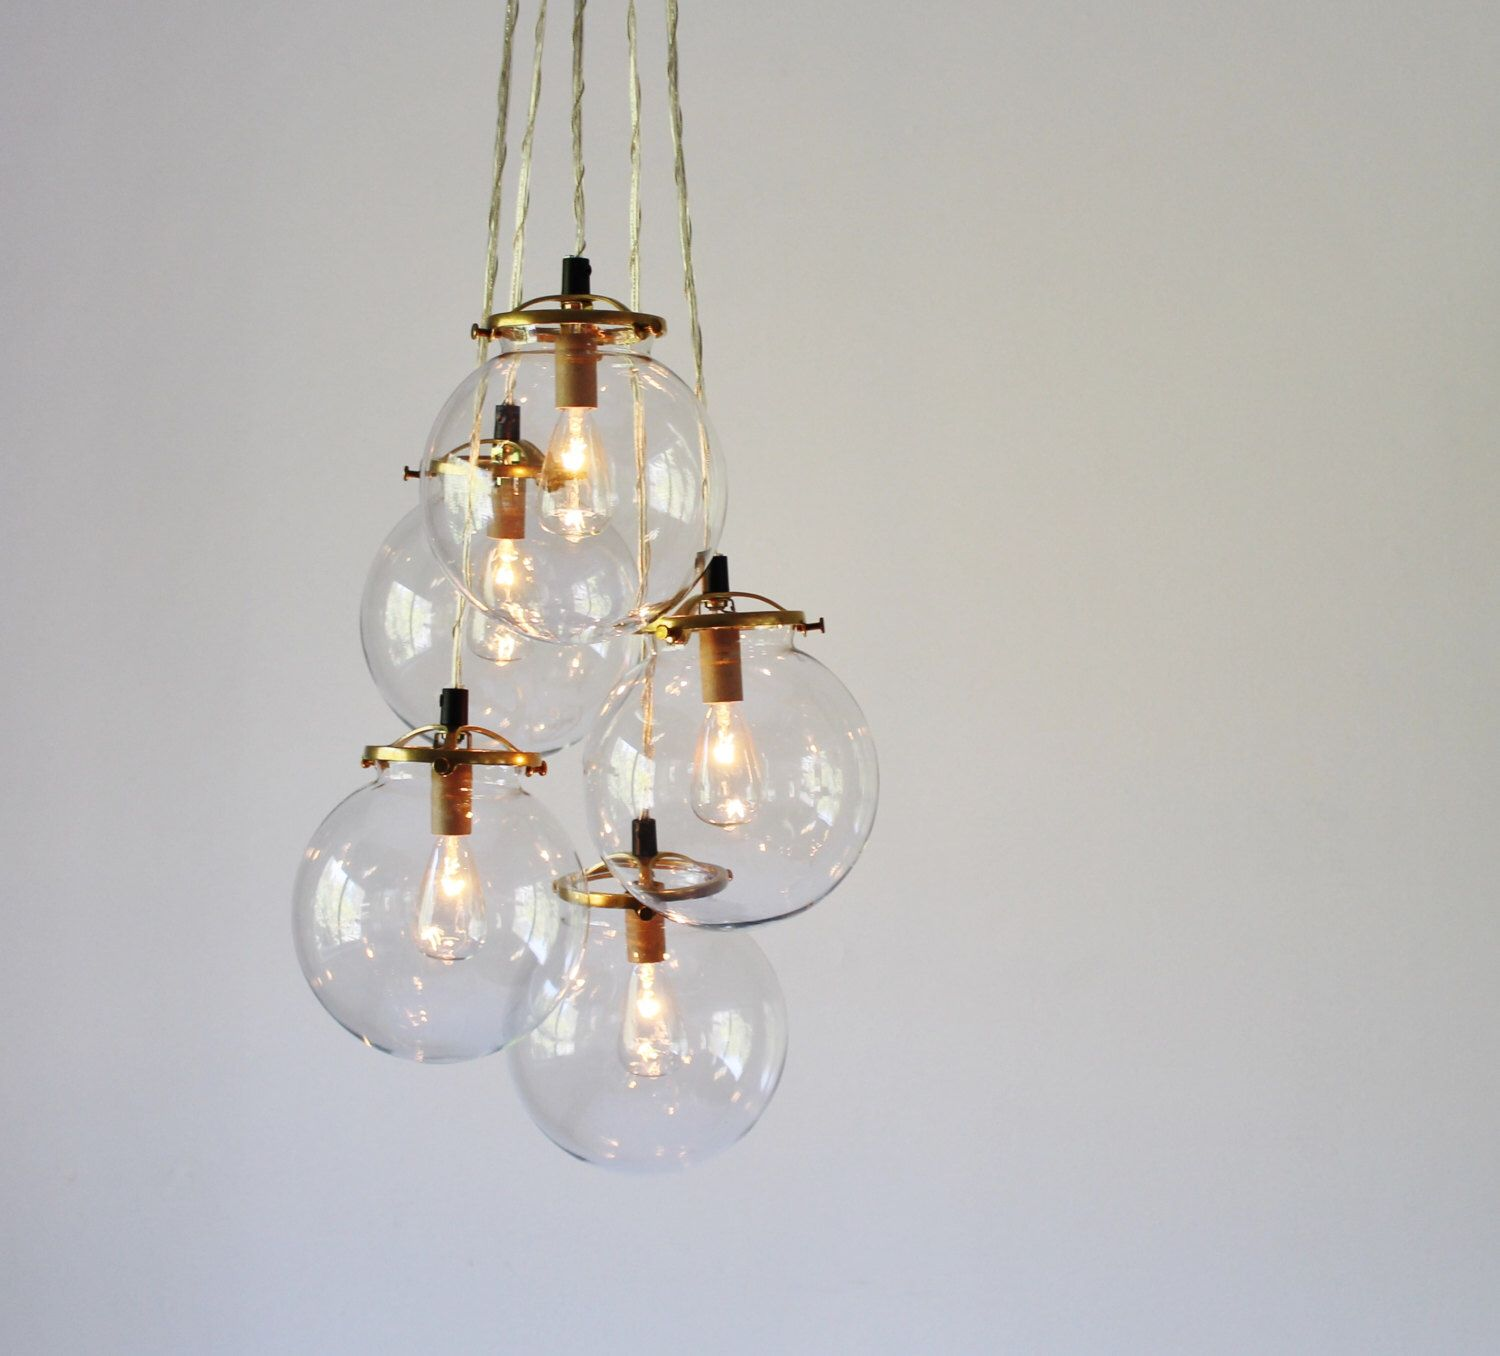 Globe Chandelier Lighting Fixture 5 Hanging Clear Glass Bubble